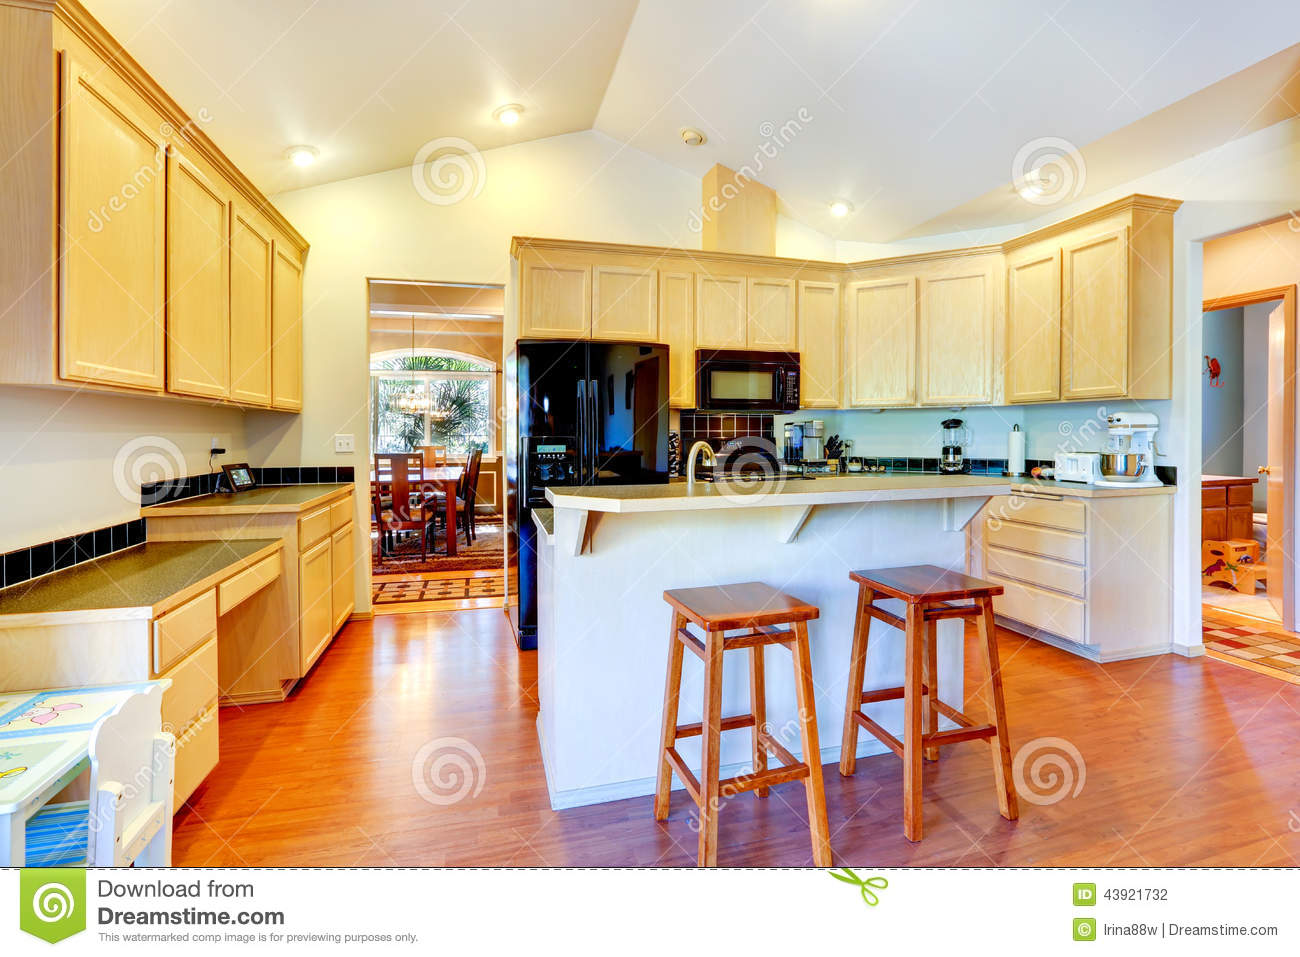 Kitchen cabinets vaulted ceiling - Appliances Black Cabinets Ceiling Kitchen Room Vaulted